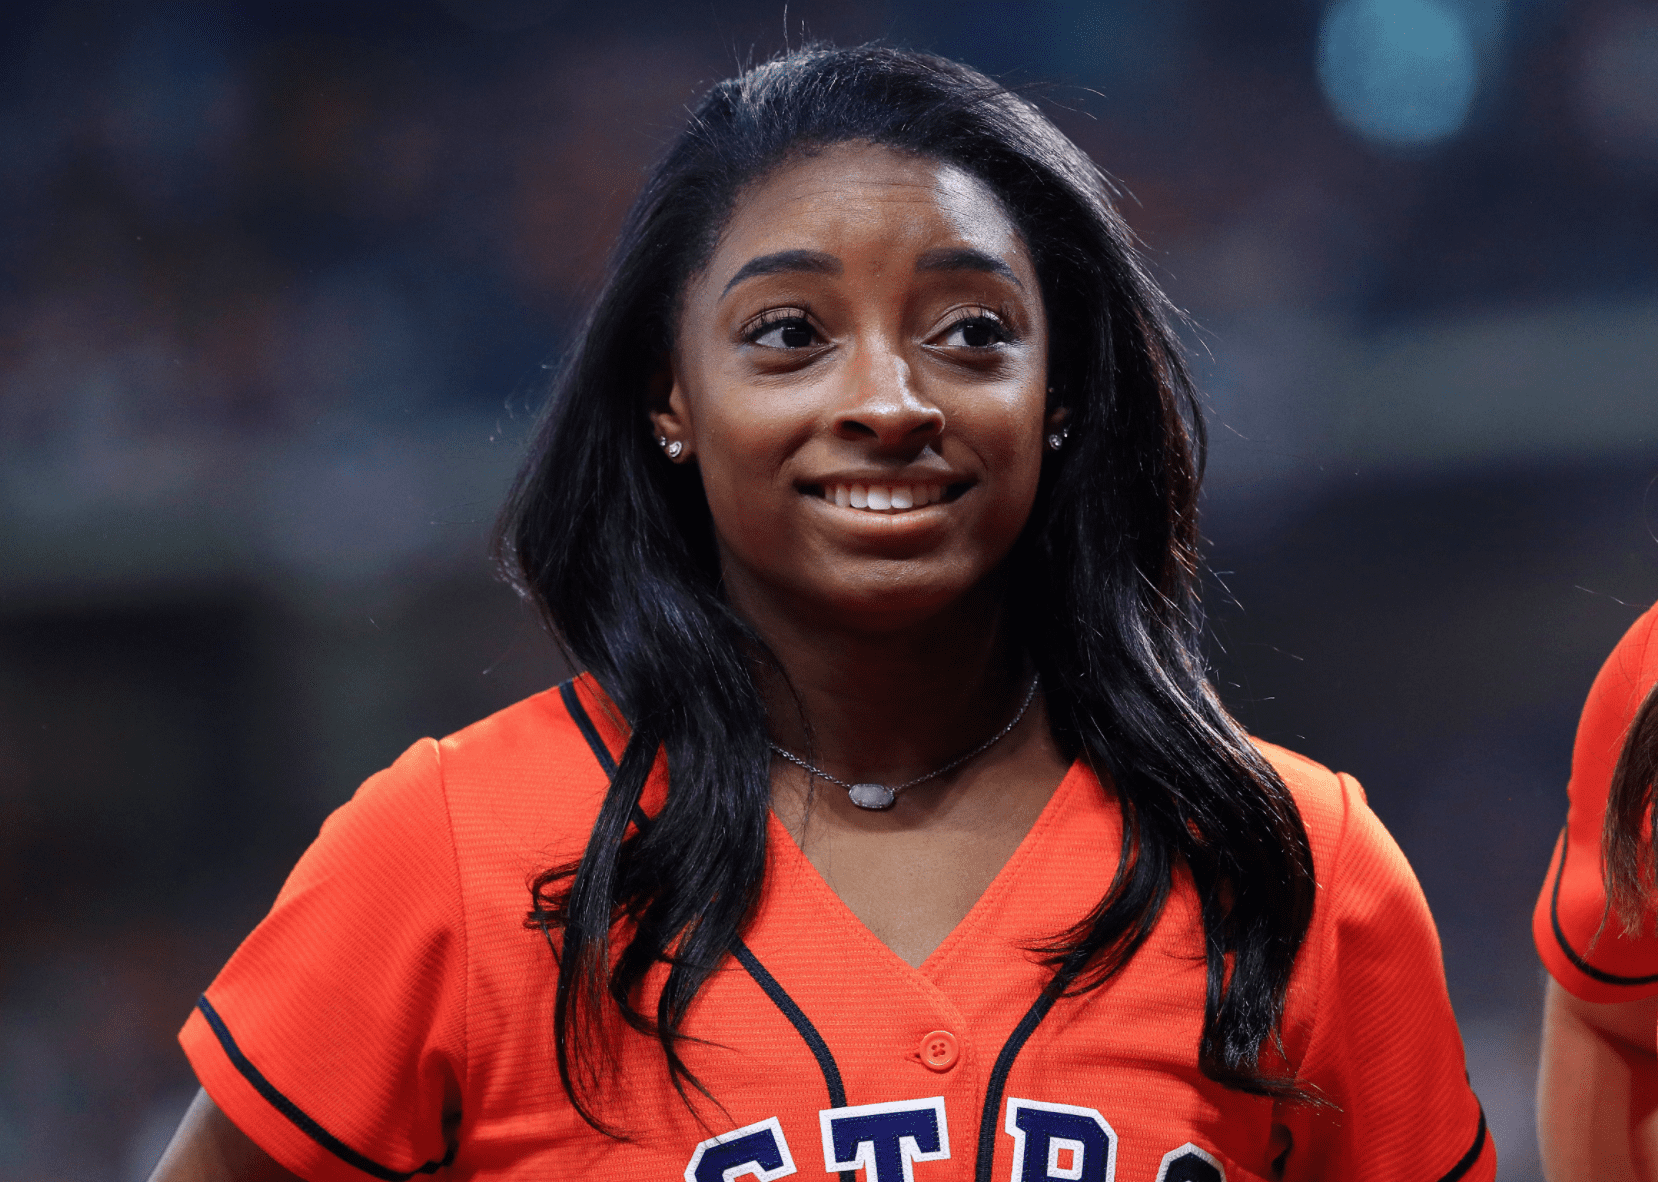 Simone Biles at a game between the Houston Astros and the Washington Nationals on October 23, 2019. | Source: Getty Images